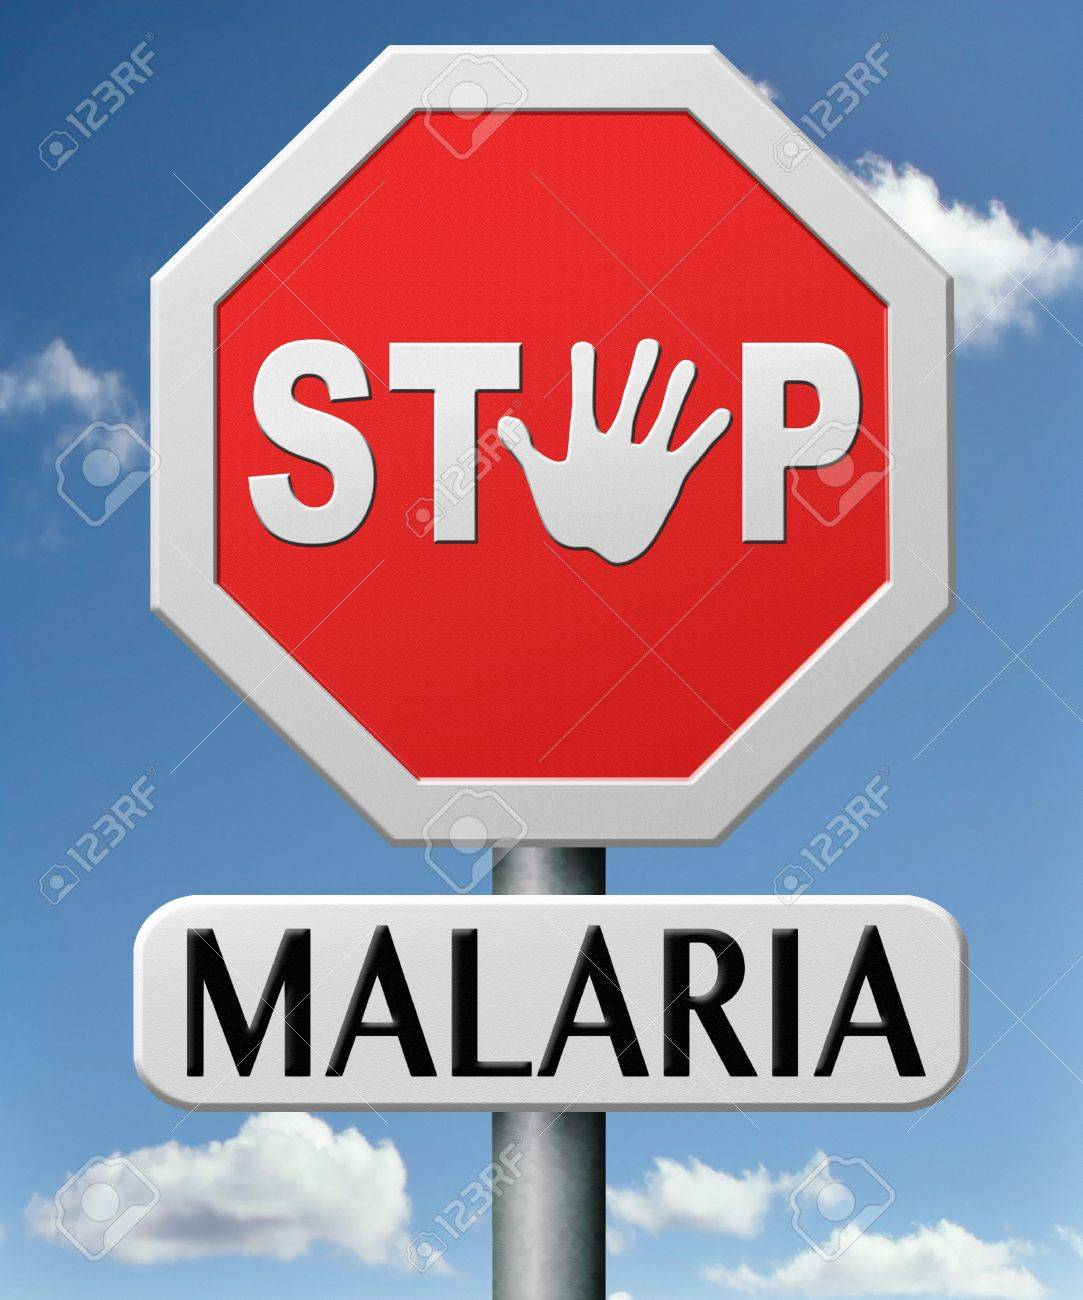 stop malaria by prevention treatment with pills or mosquito nets good diagnosis for sumptoms and insect repellent and net avoids bite and infection with parasite Stock Photo - 17463044